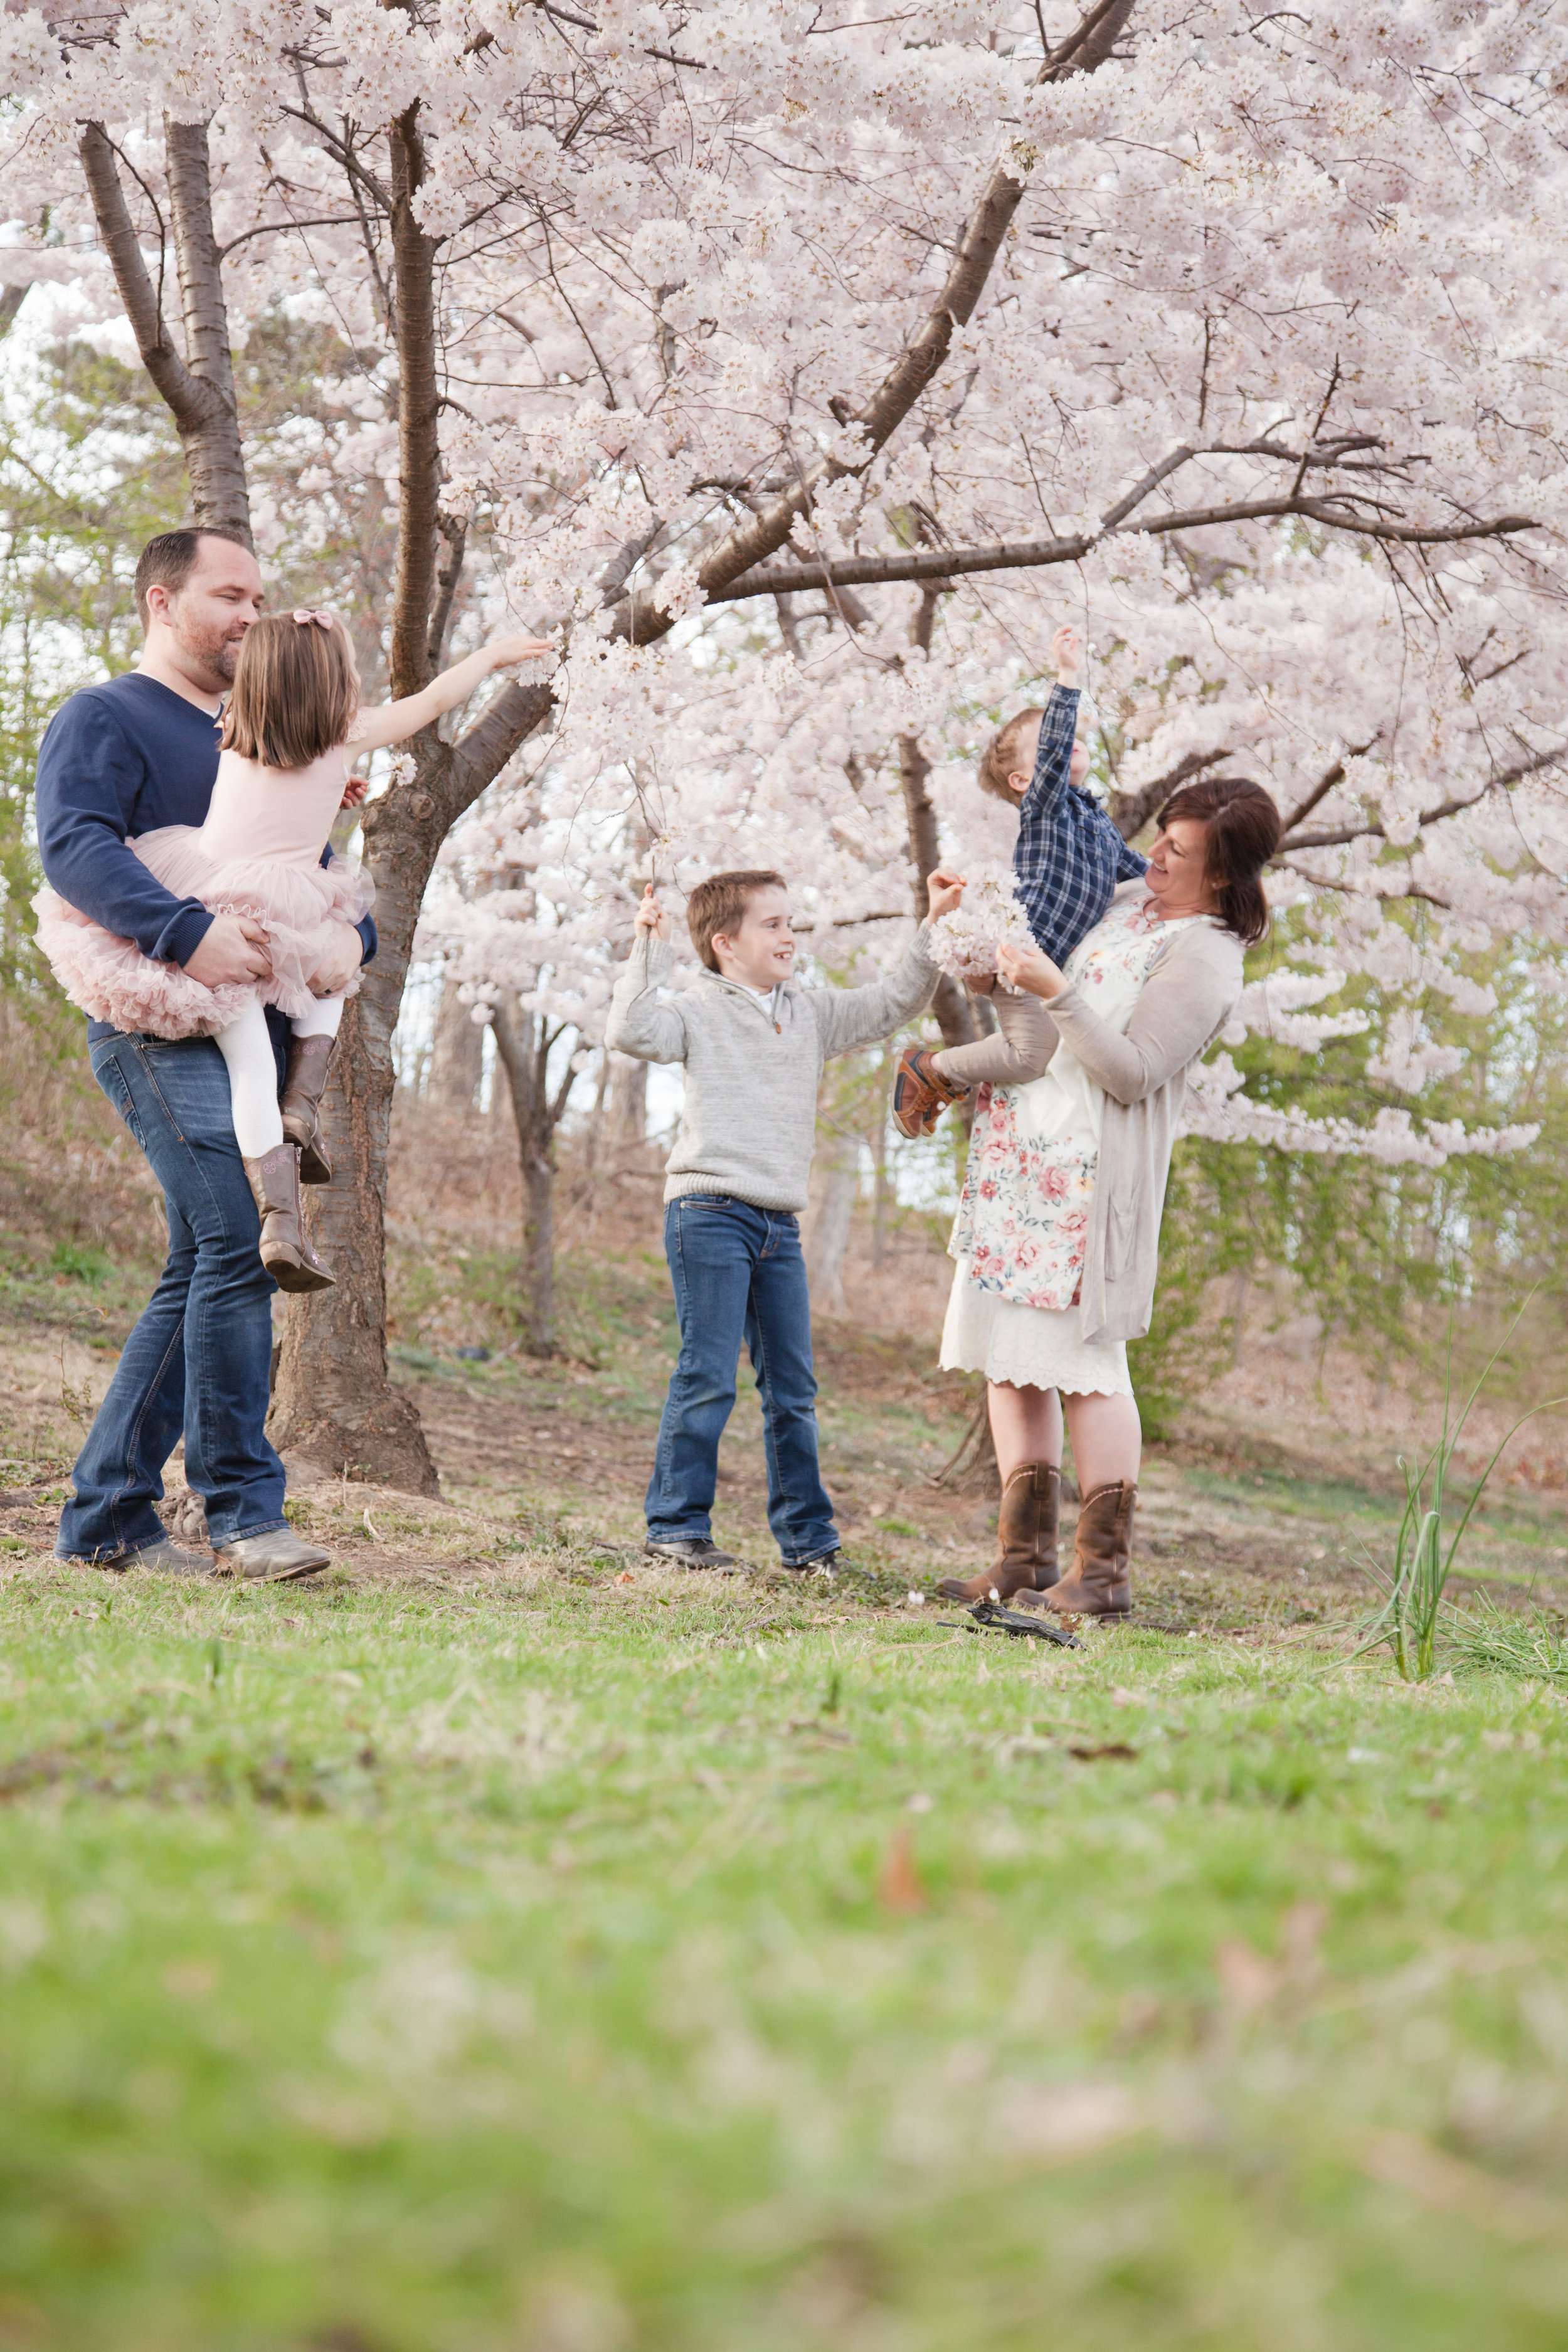 Spring Blossoms Photo sessions - NOW BOOKINGNewborn . Child . Family . Graduating Seniors . Communion . Mommy and Me . Engagements